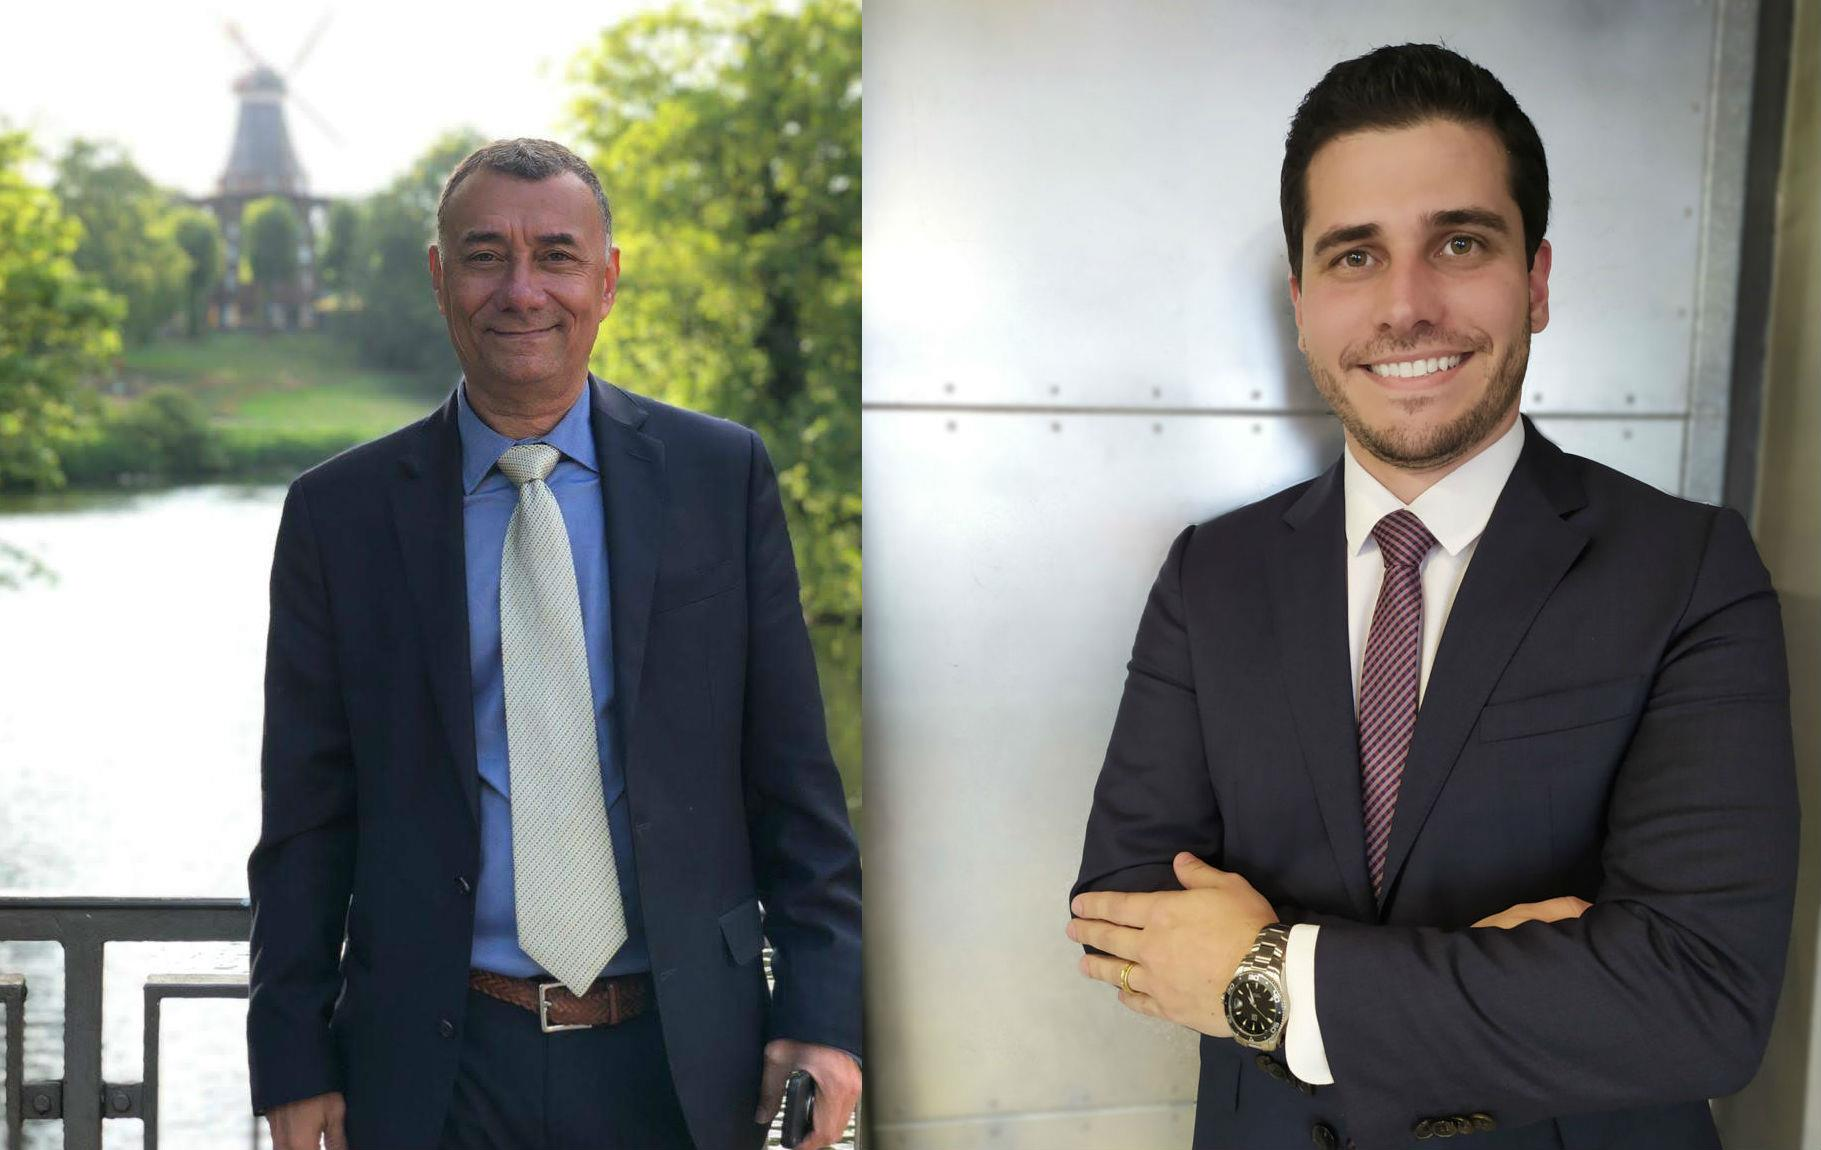 BrazGlobal's VitorPaulo S. Amaral and Over Projects' Marcelo Braga.